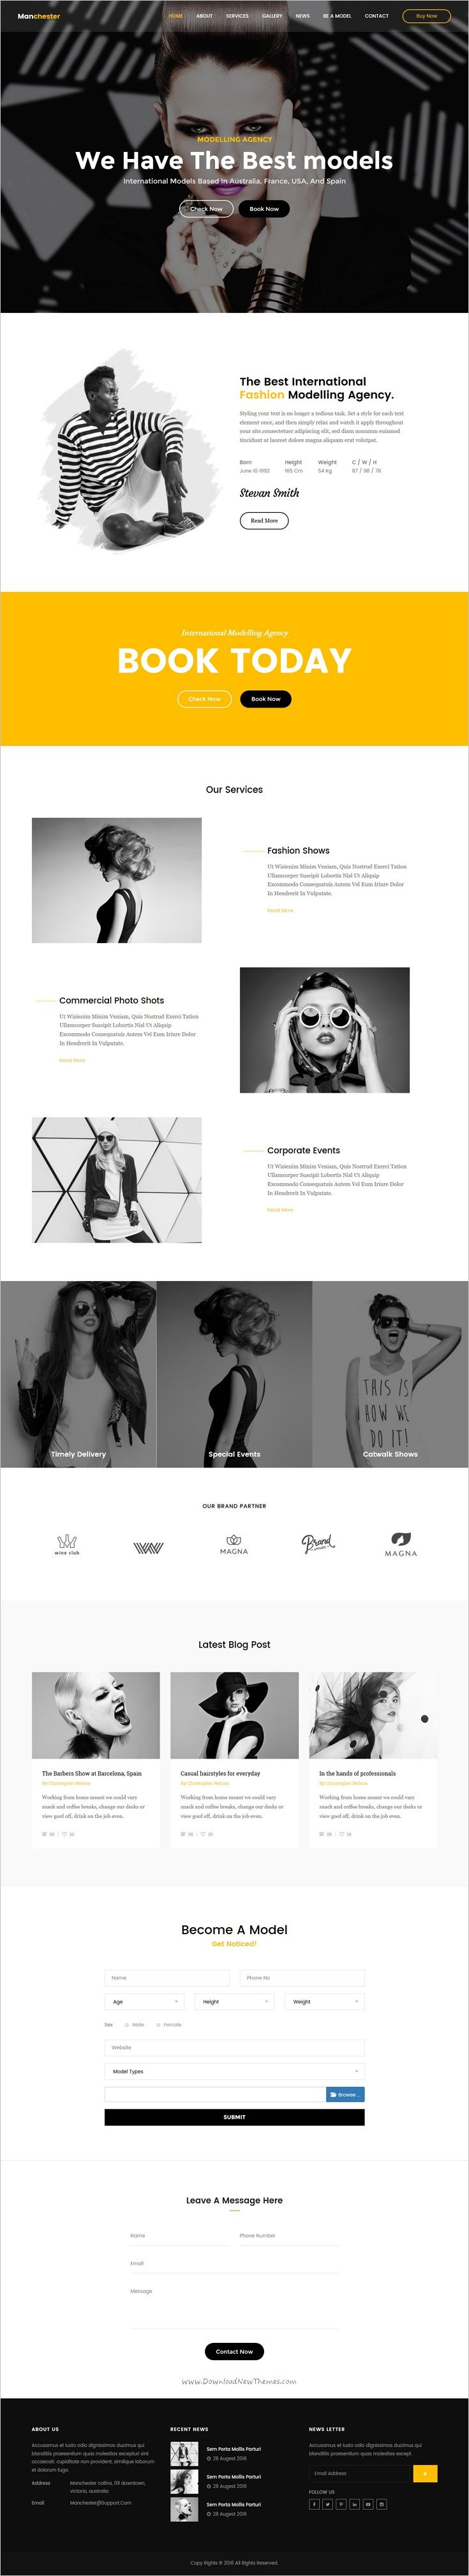 Manchester is a wonderful responsive 5in1 #HTML #bootstrap template for #fashion #models #agencies multipurpose website download now➩ https://themeforest.net/item/manchester-template-for-lawyers-writers-authors-salon-trainer-and-modeling-agency/18858927?ref=Datasata